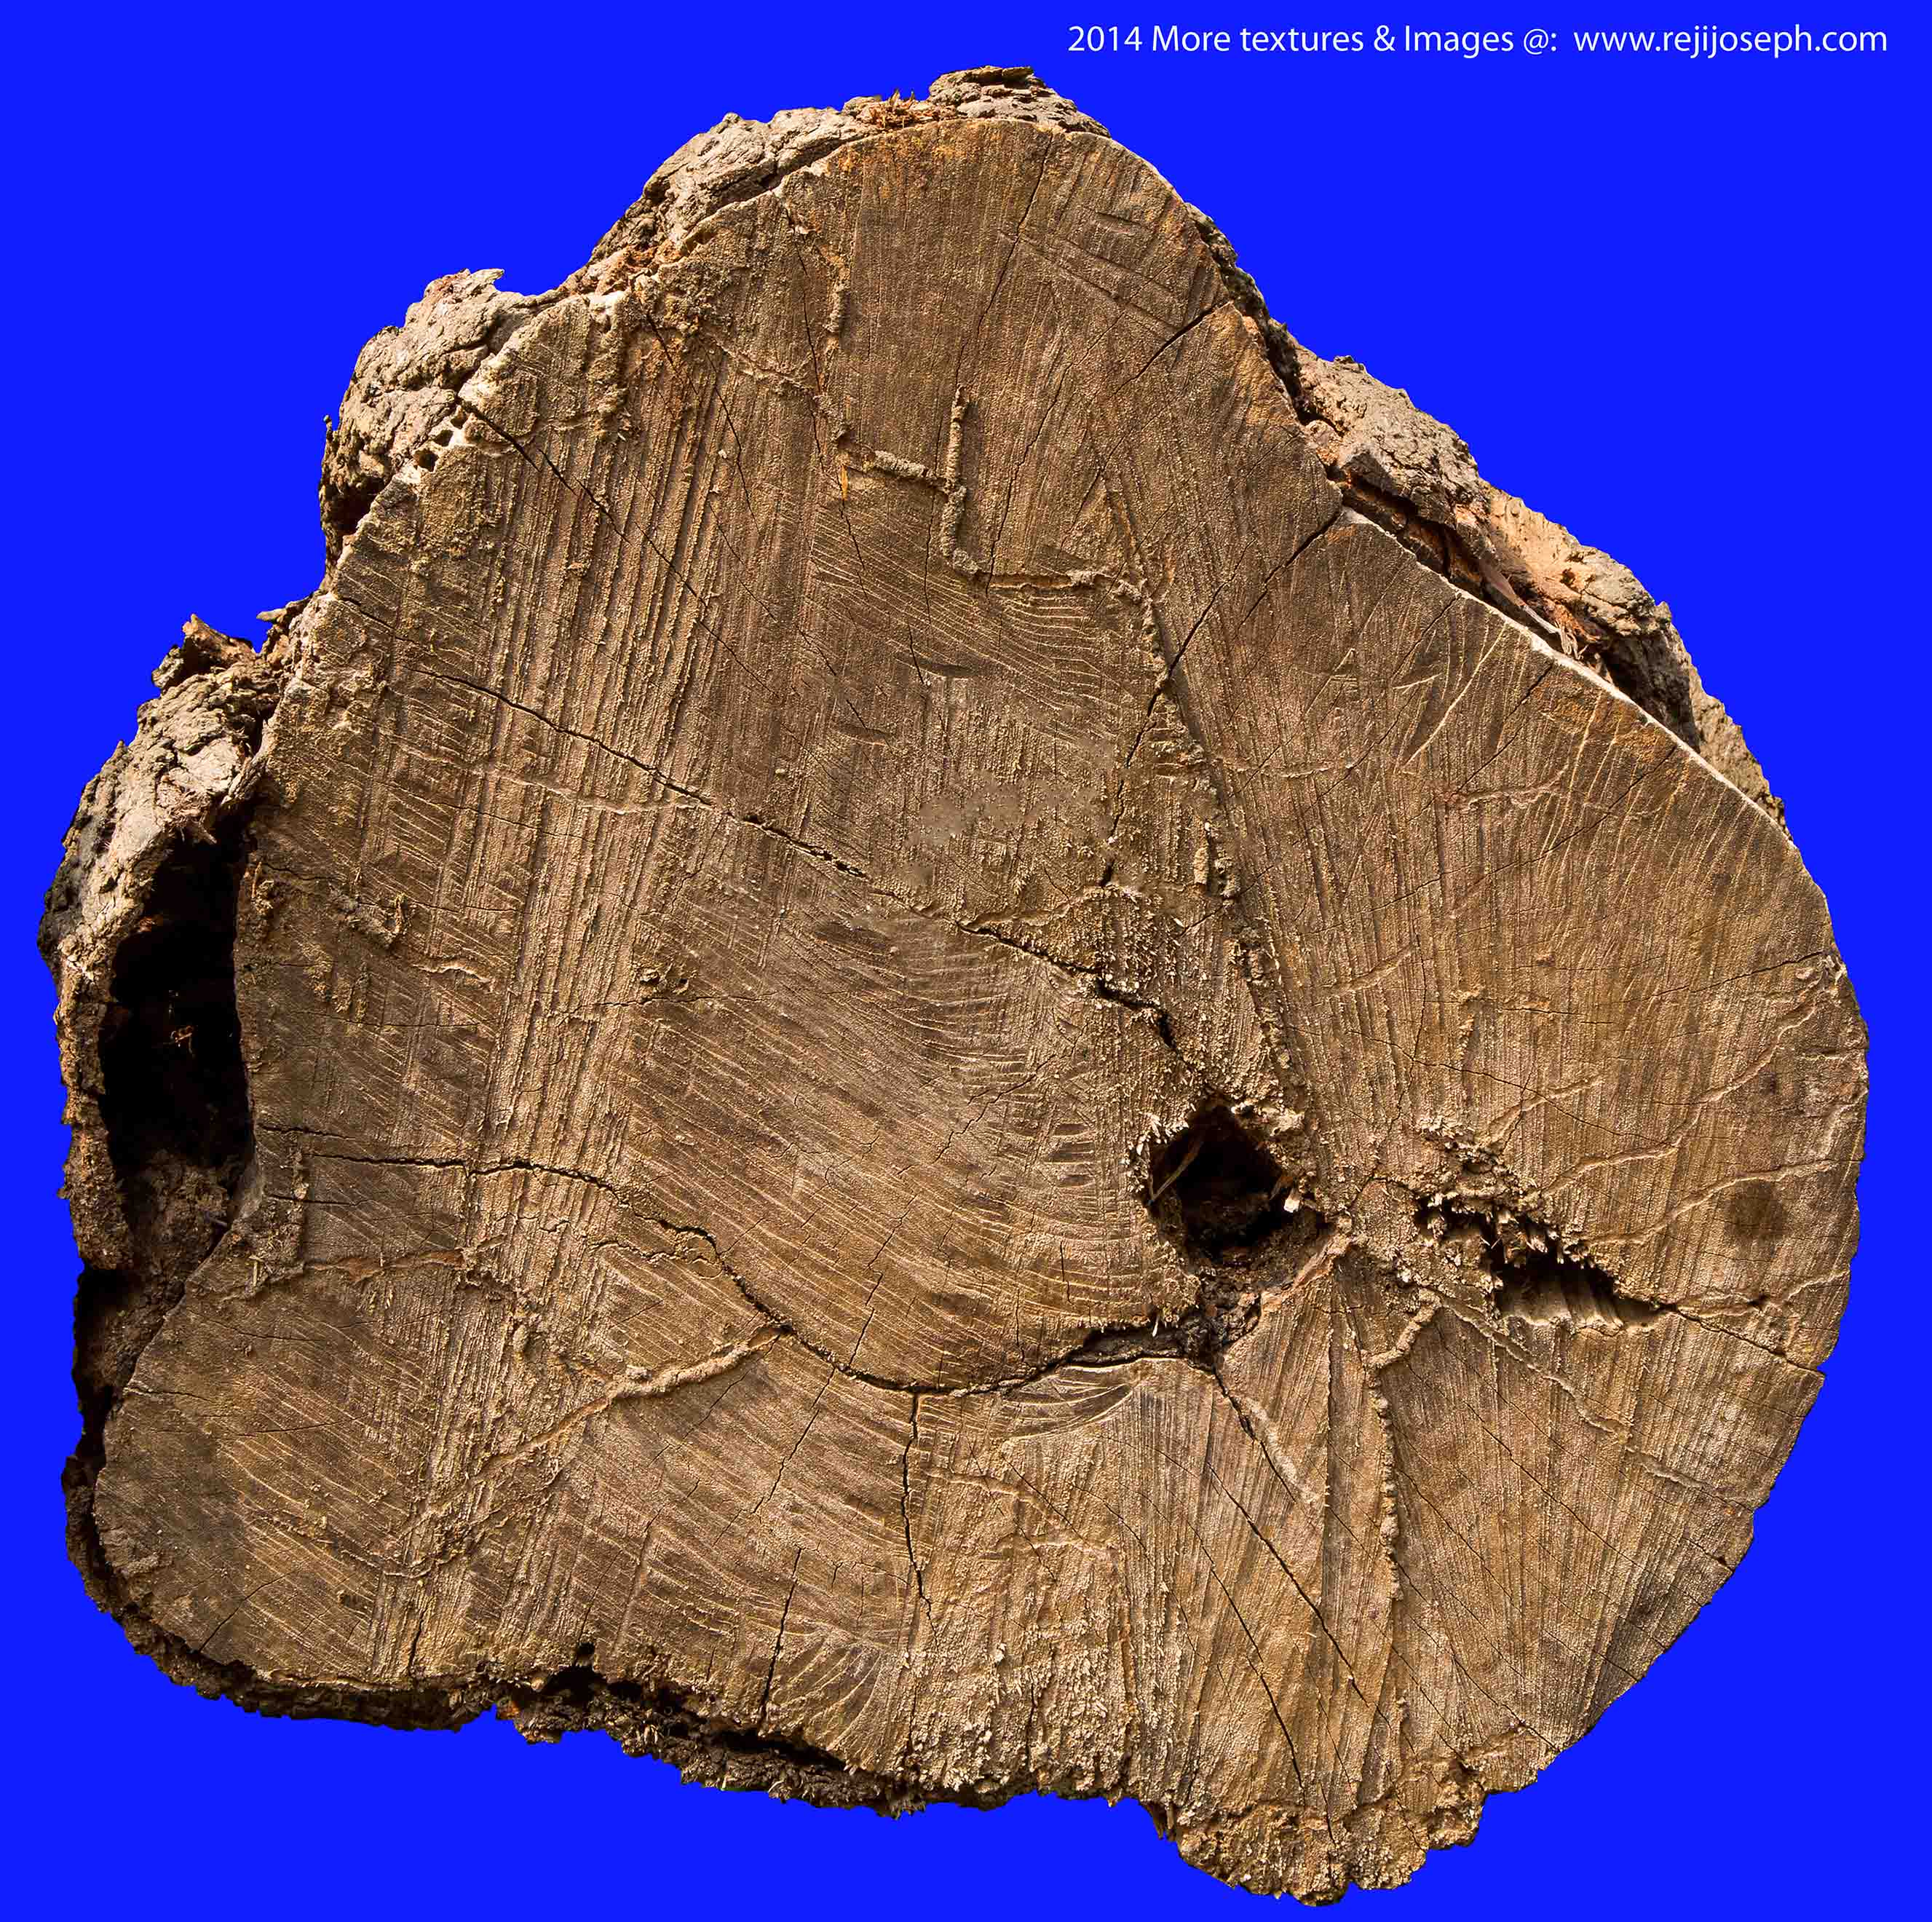 Wood Tree Trunk texture 00004